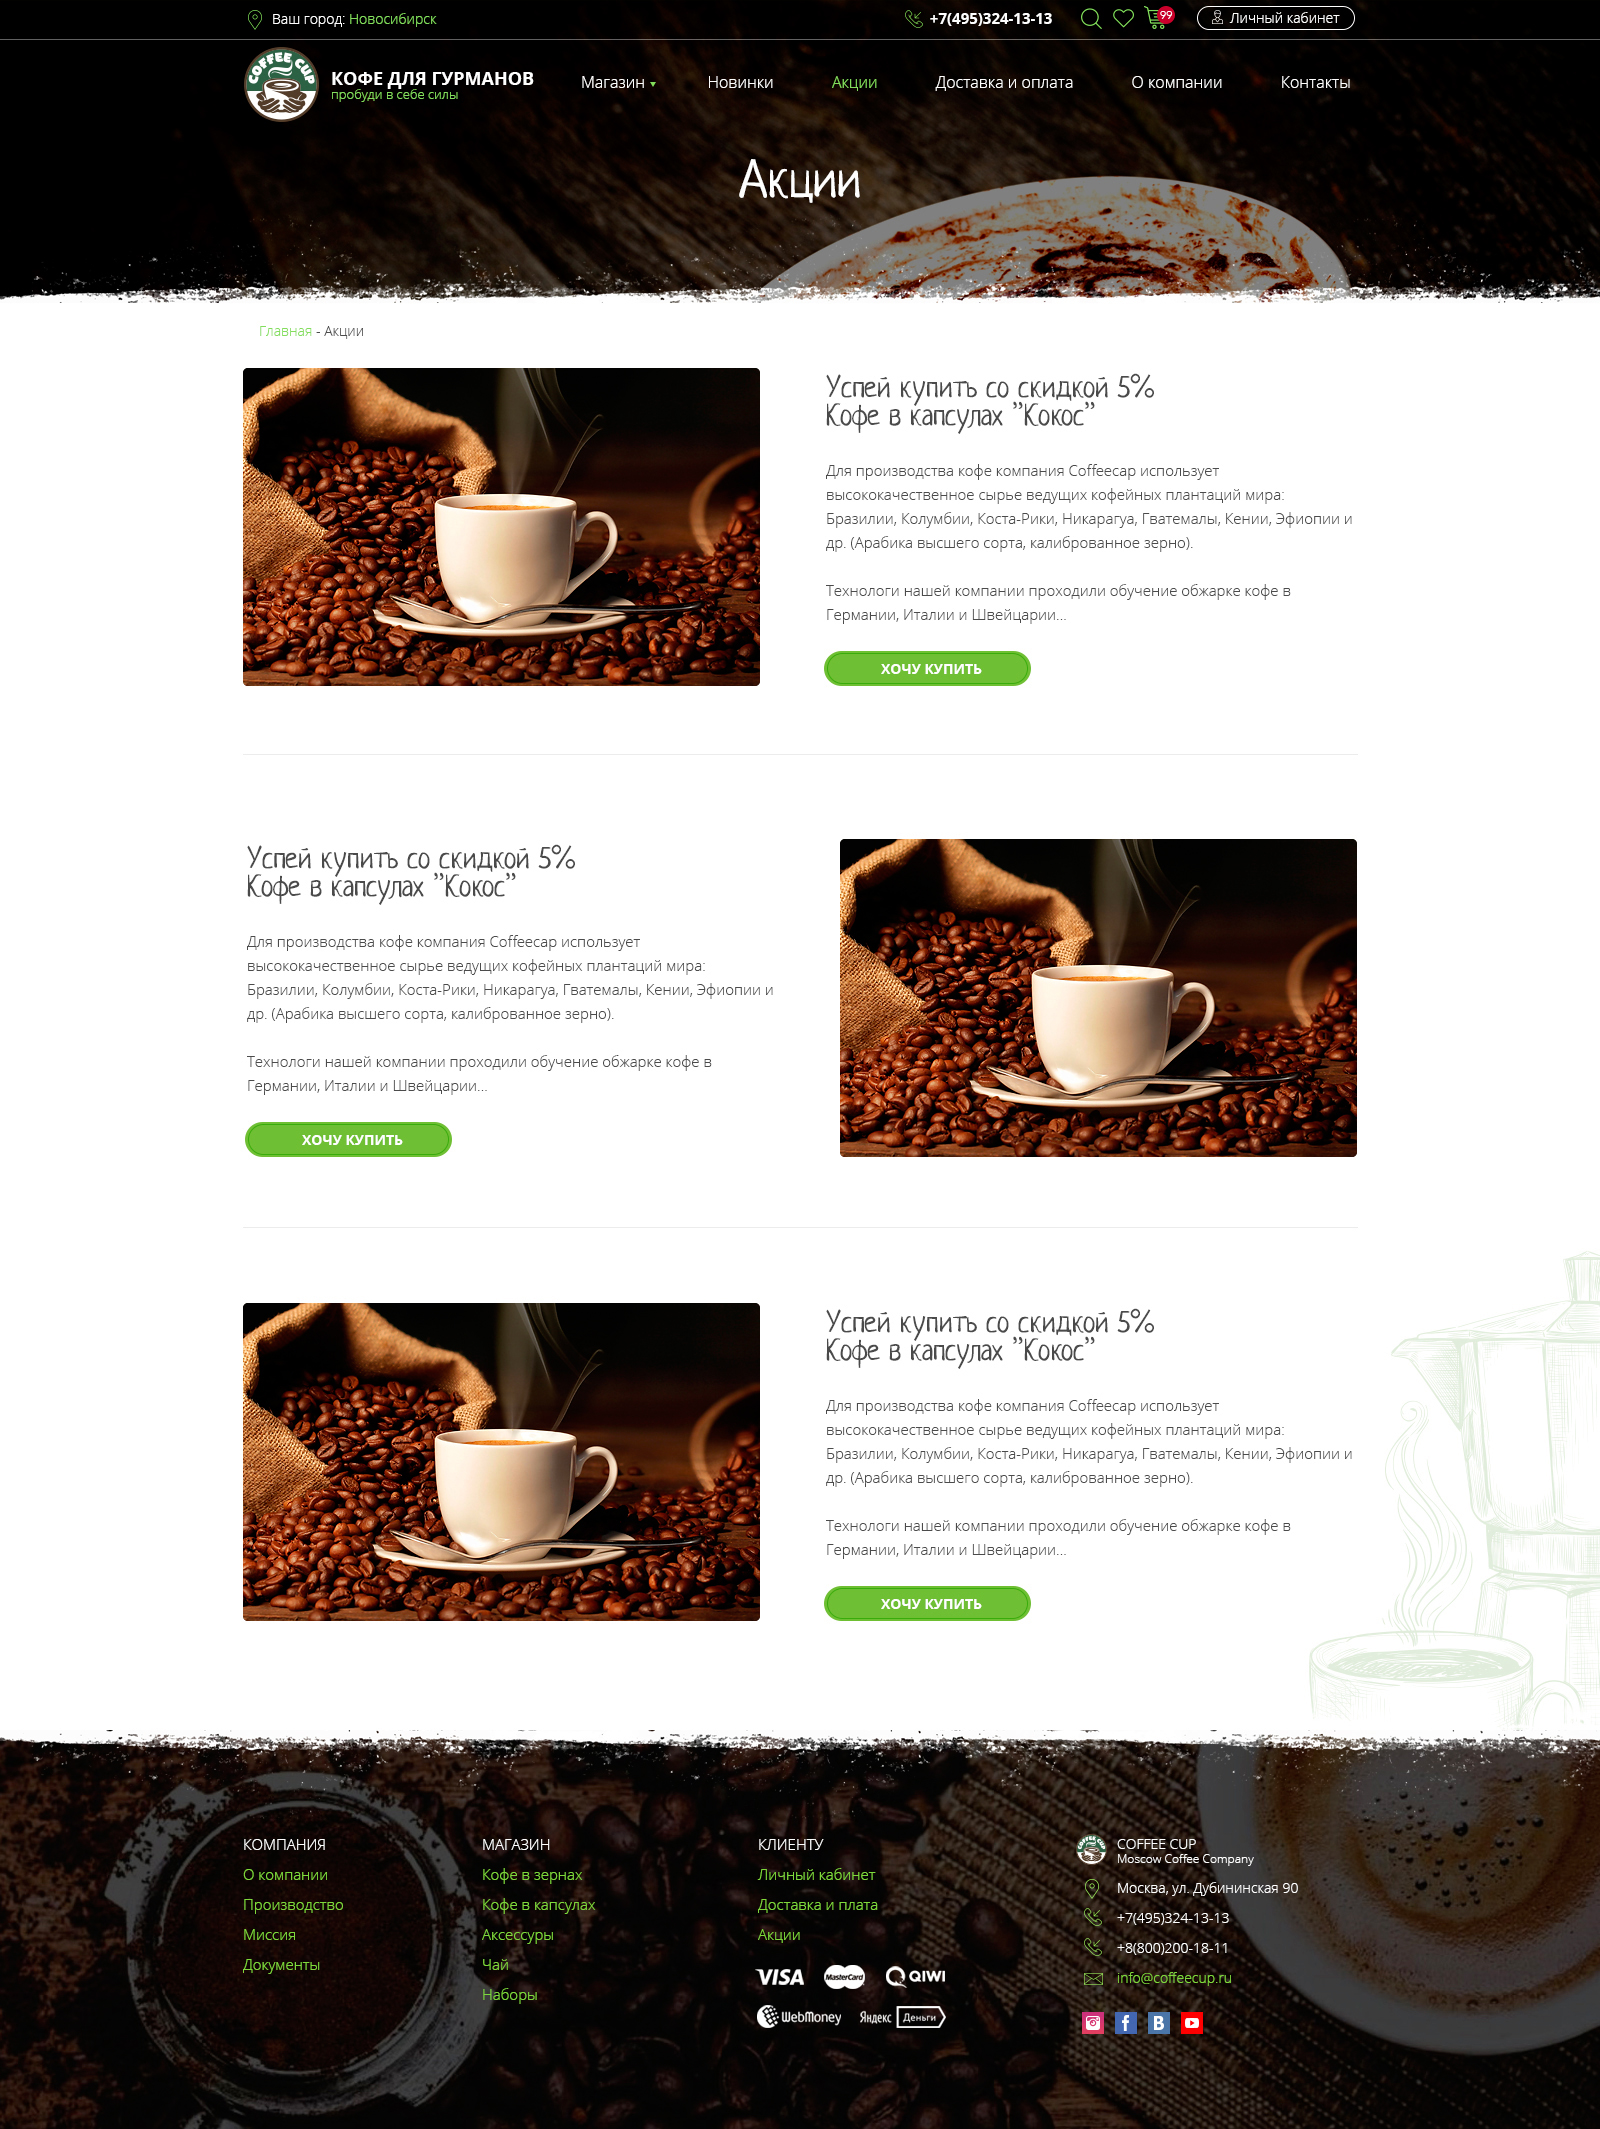 Promo page design of Coffeecup website